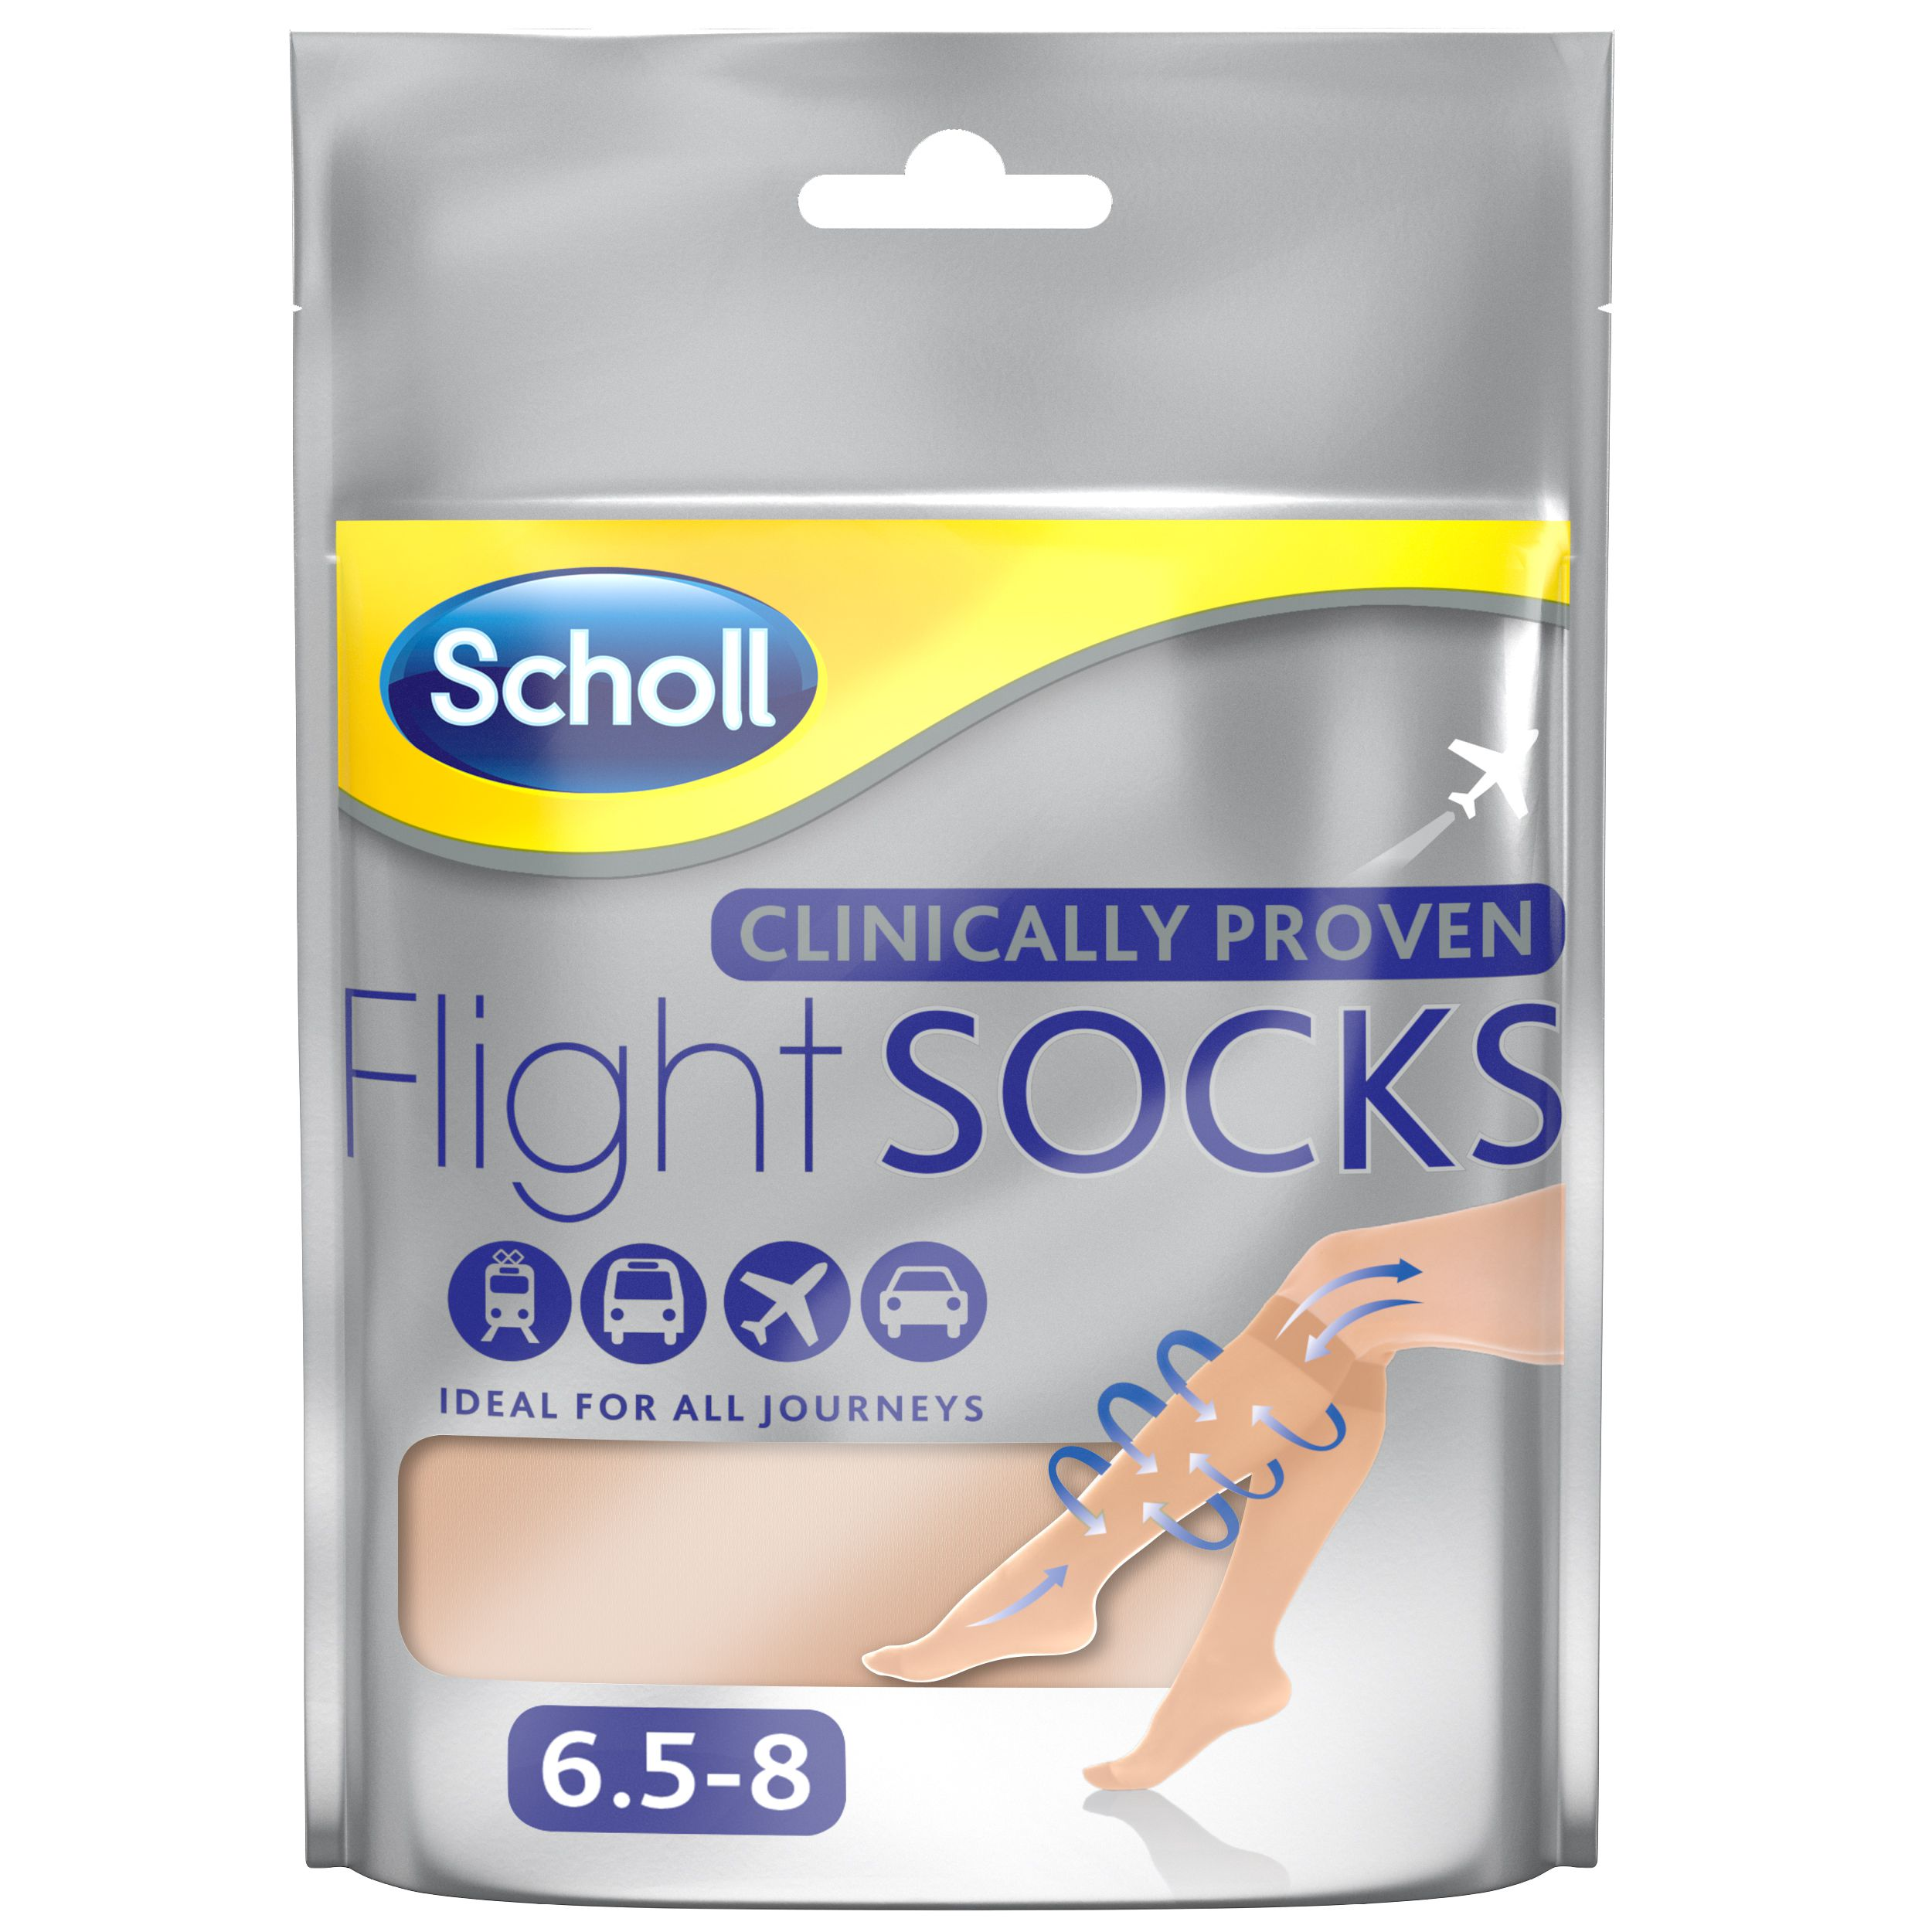 Flight Socks Sheer 6.5-8